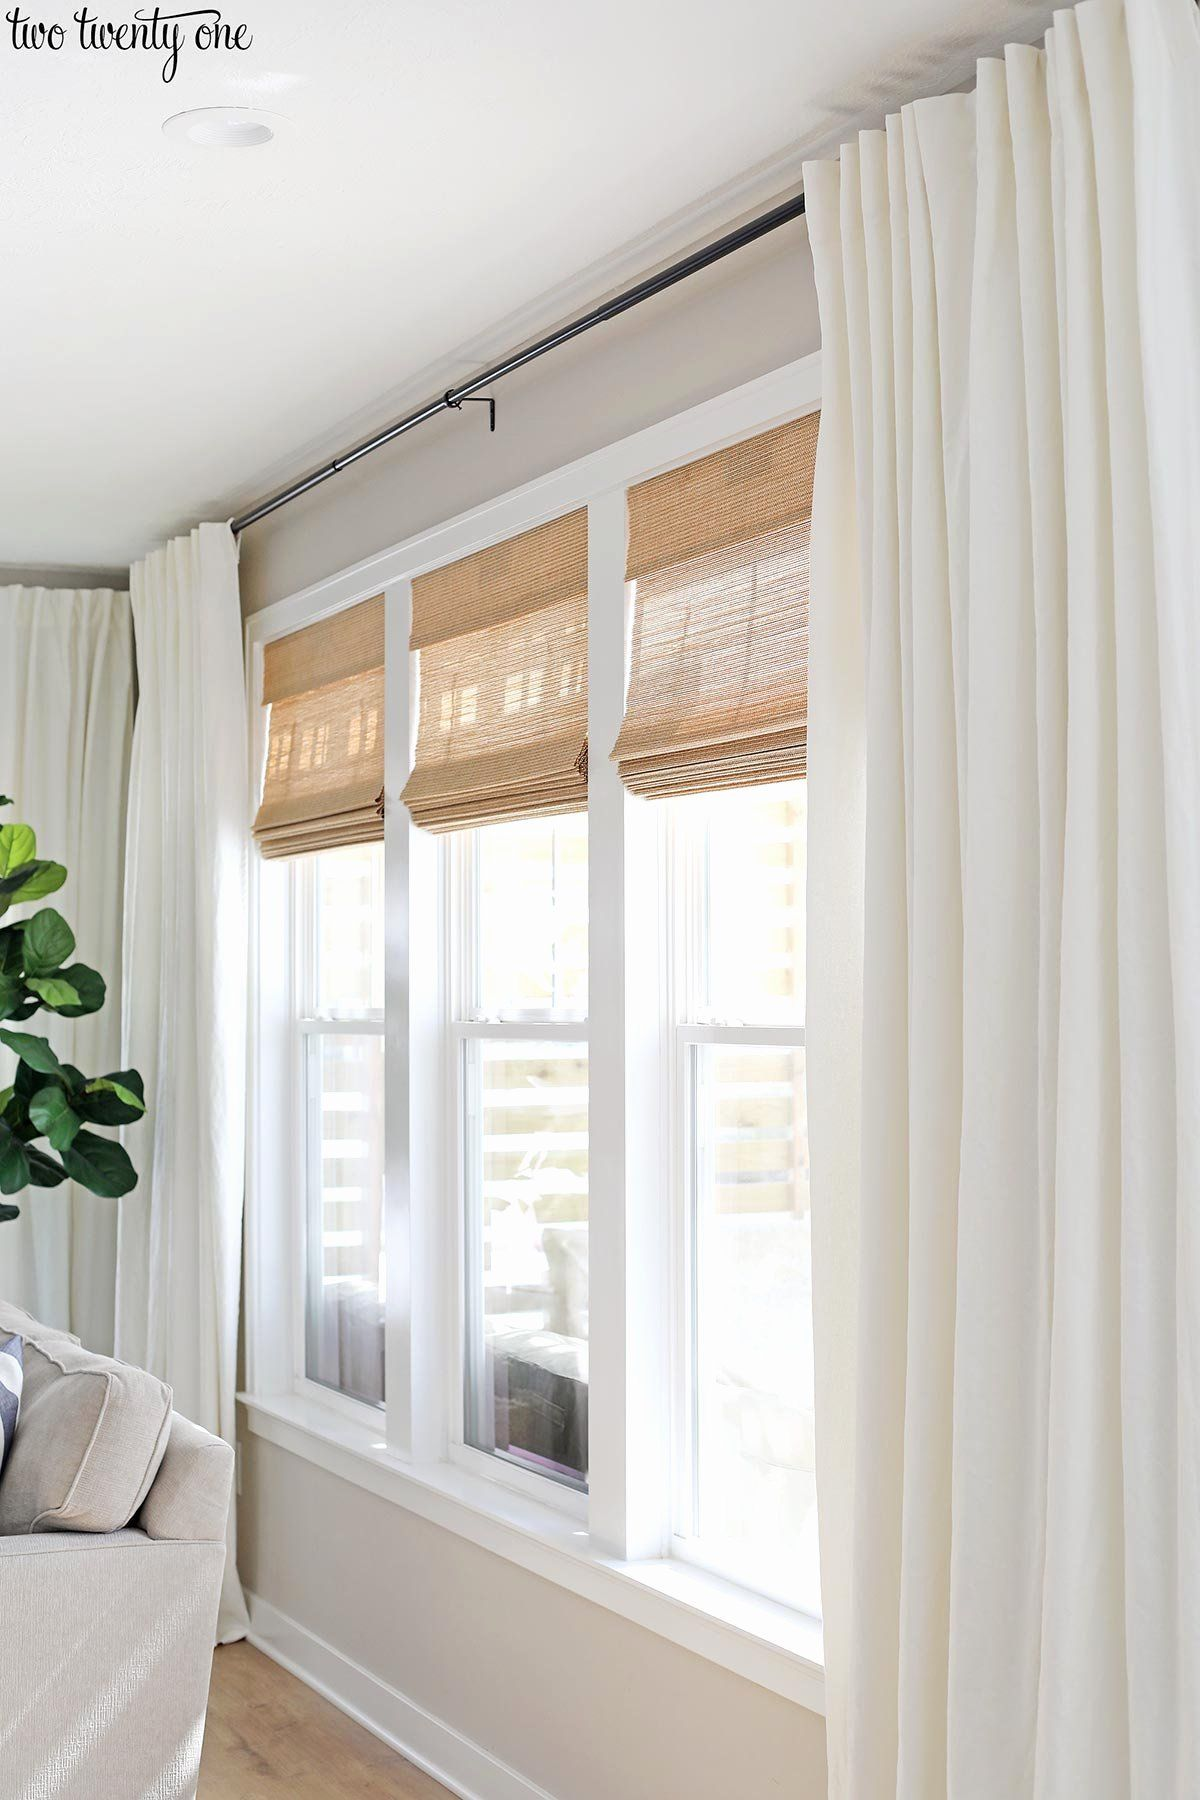 Casual Dining Room Window Treatments Awesome Bud Friendly Living Room Window Trea Budget Friendly Living Room Window Treatments Living Room Living Room Windows